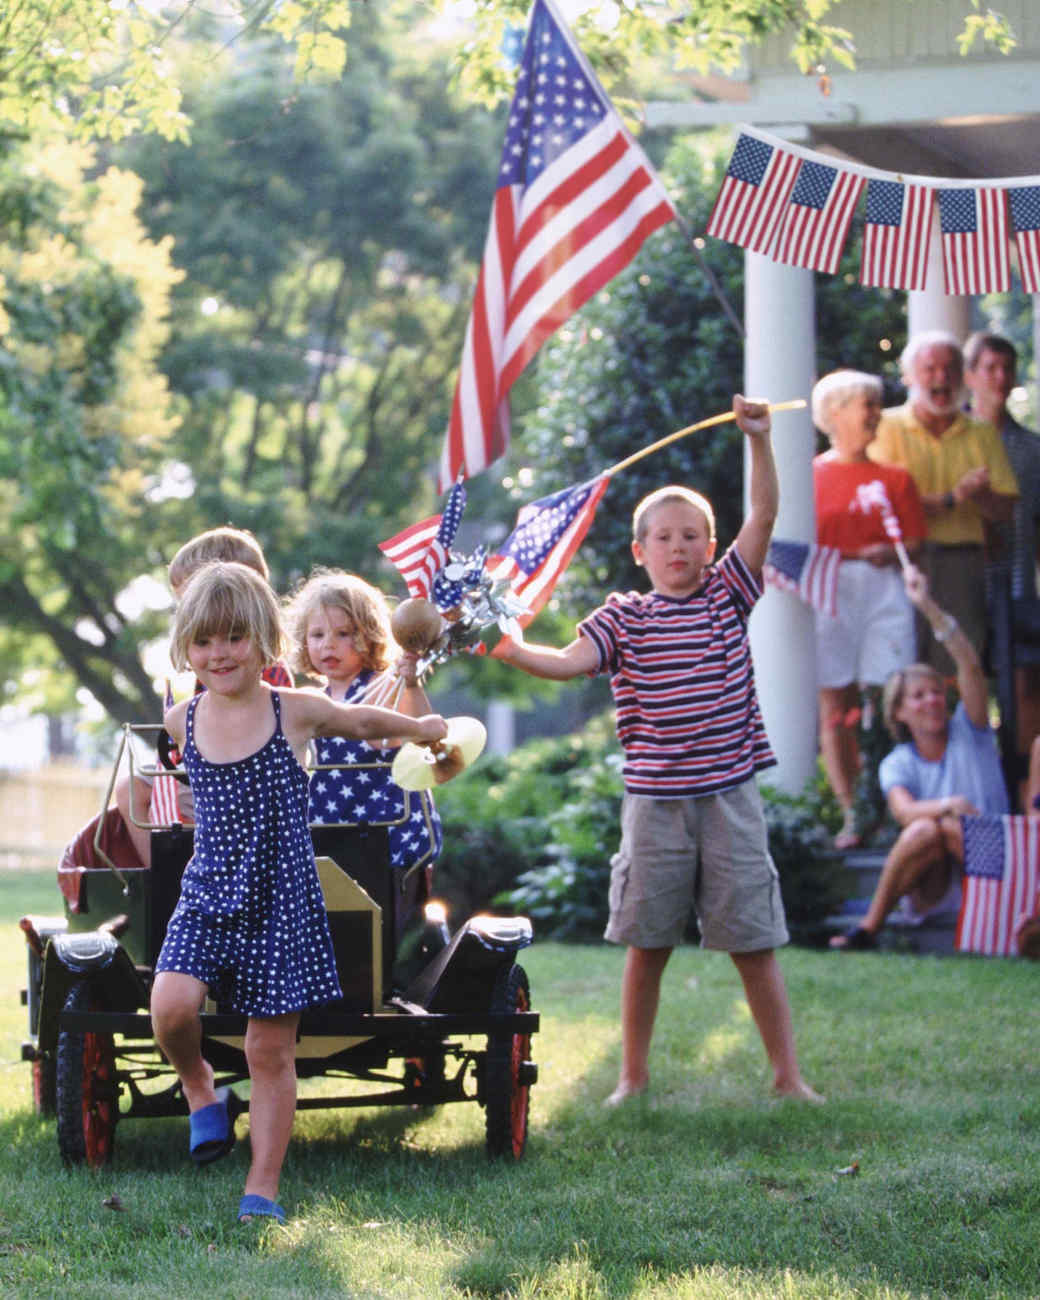 garland-and-children-with-stick-flags-0515.jpg